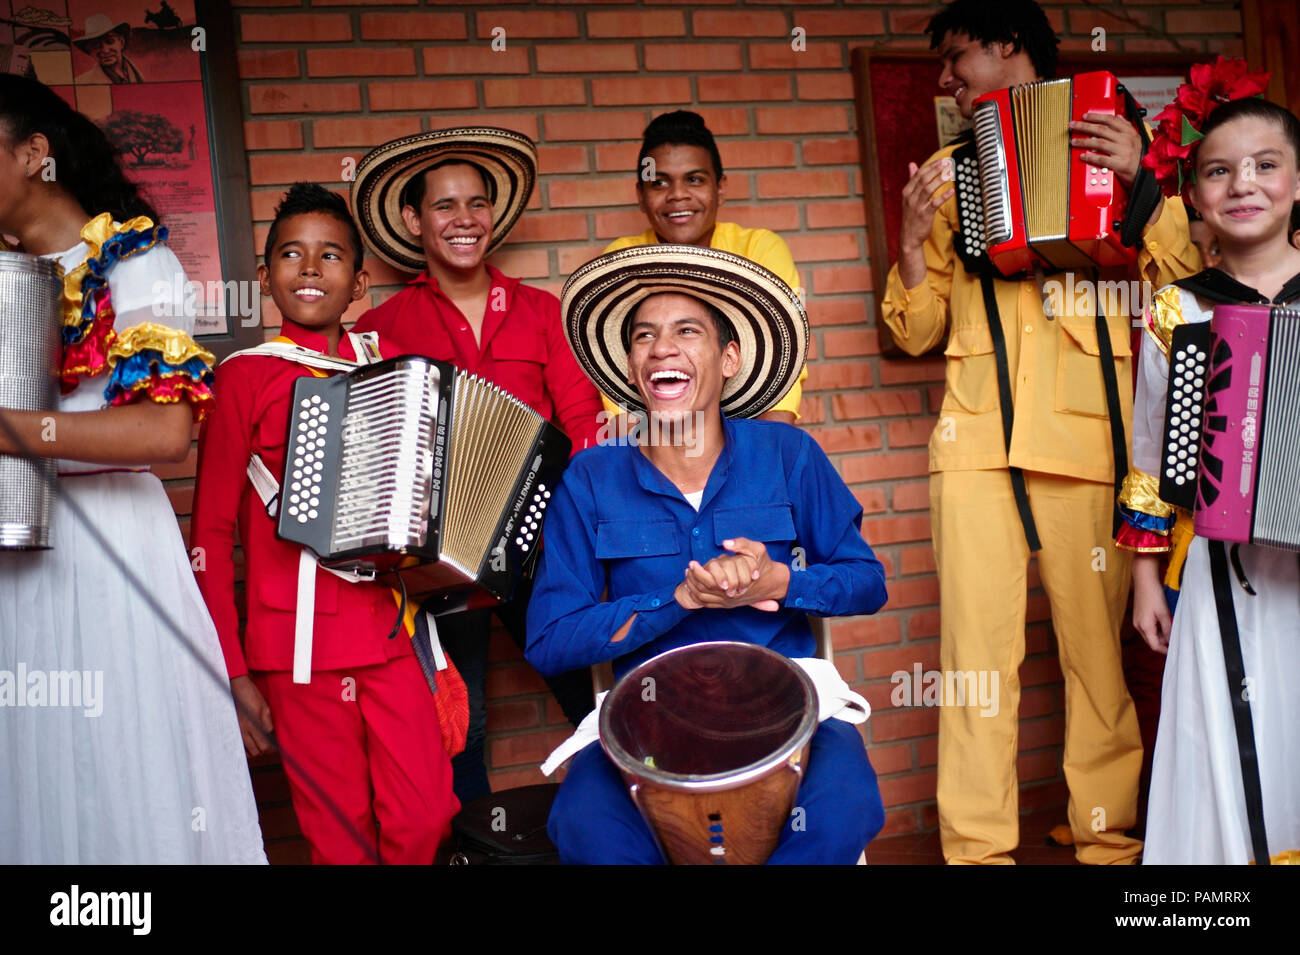 Andres 'Turco' Gil's accordion academy trains young children in the music of vallenato, many of them are refugees from violence or live in poverty Stock Photo